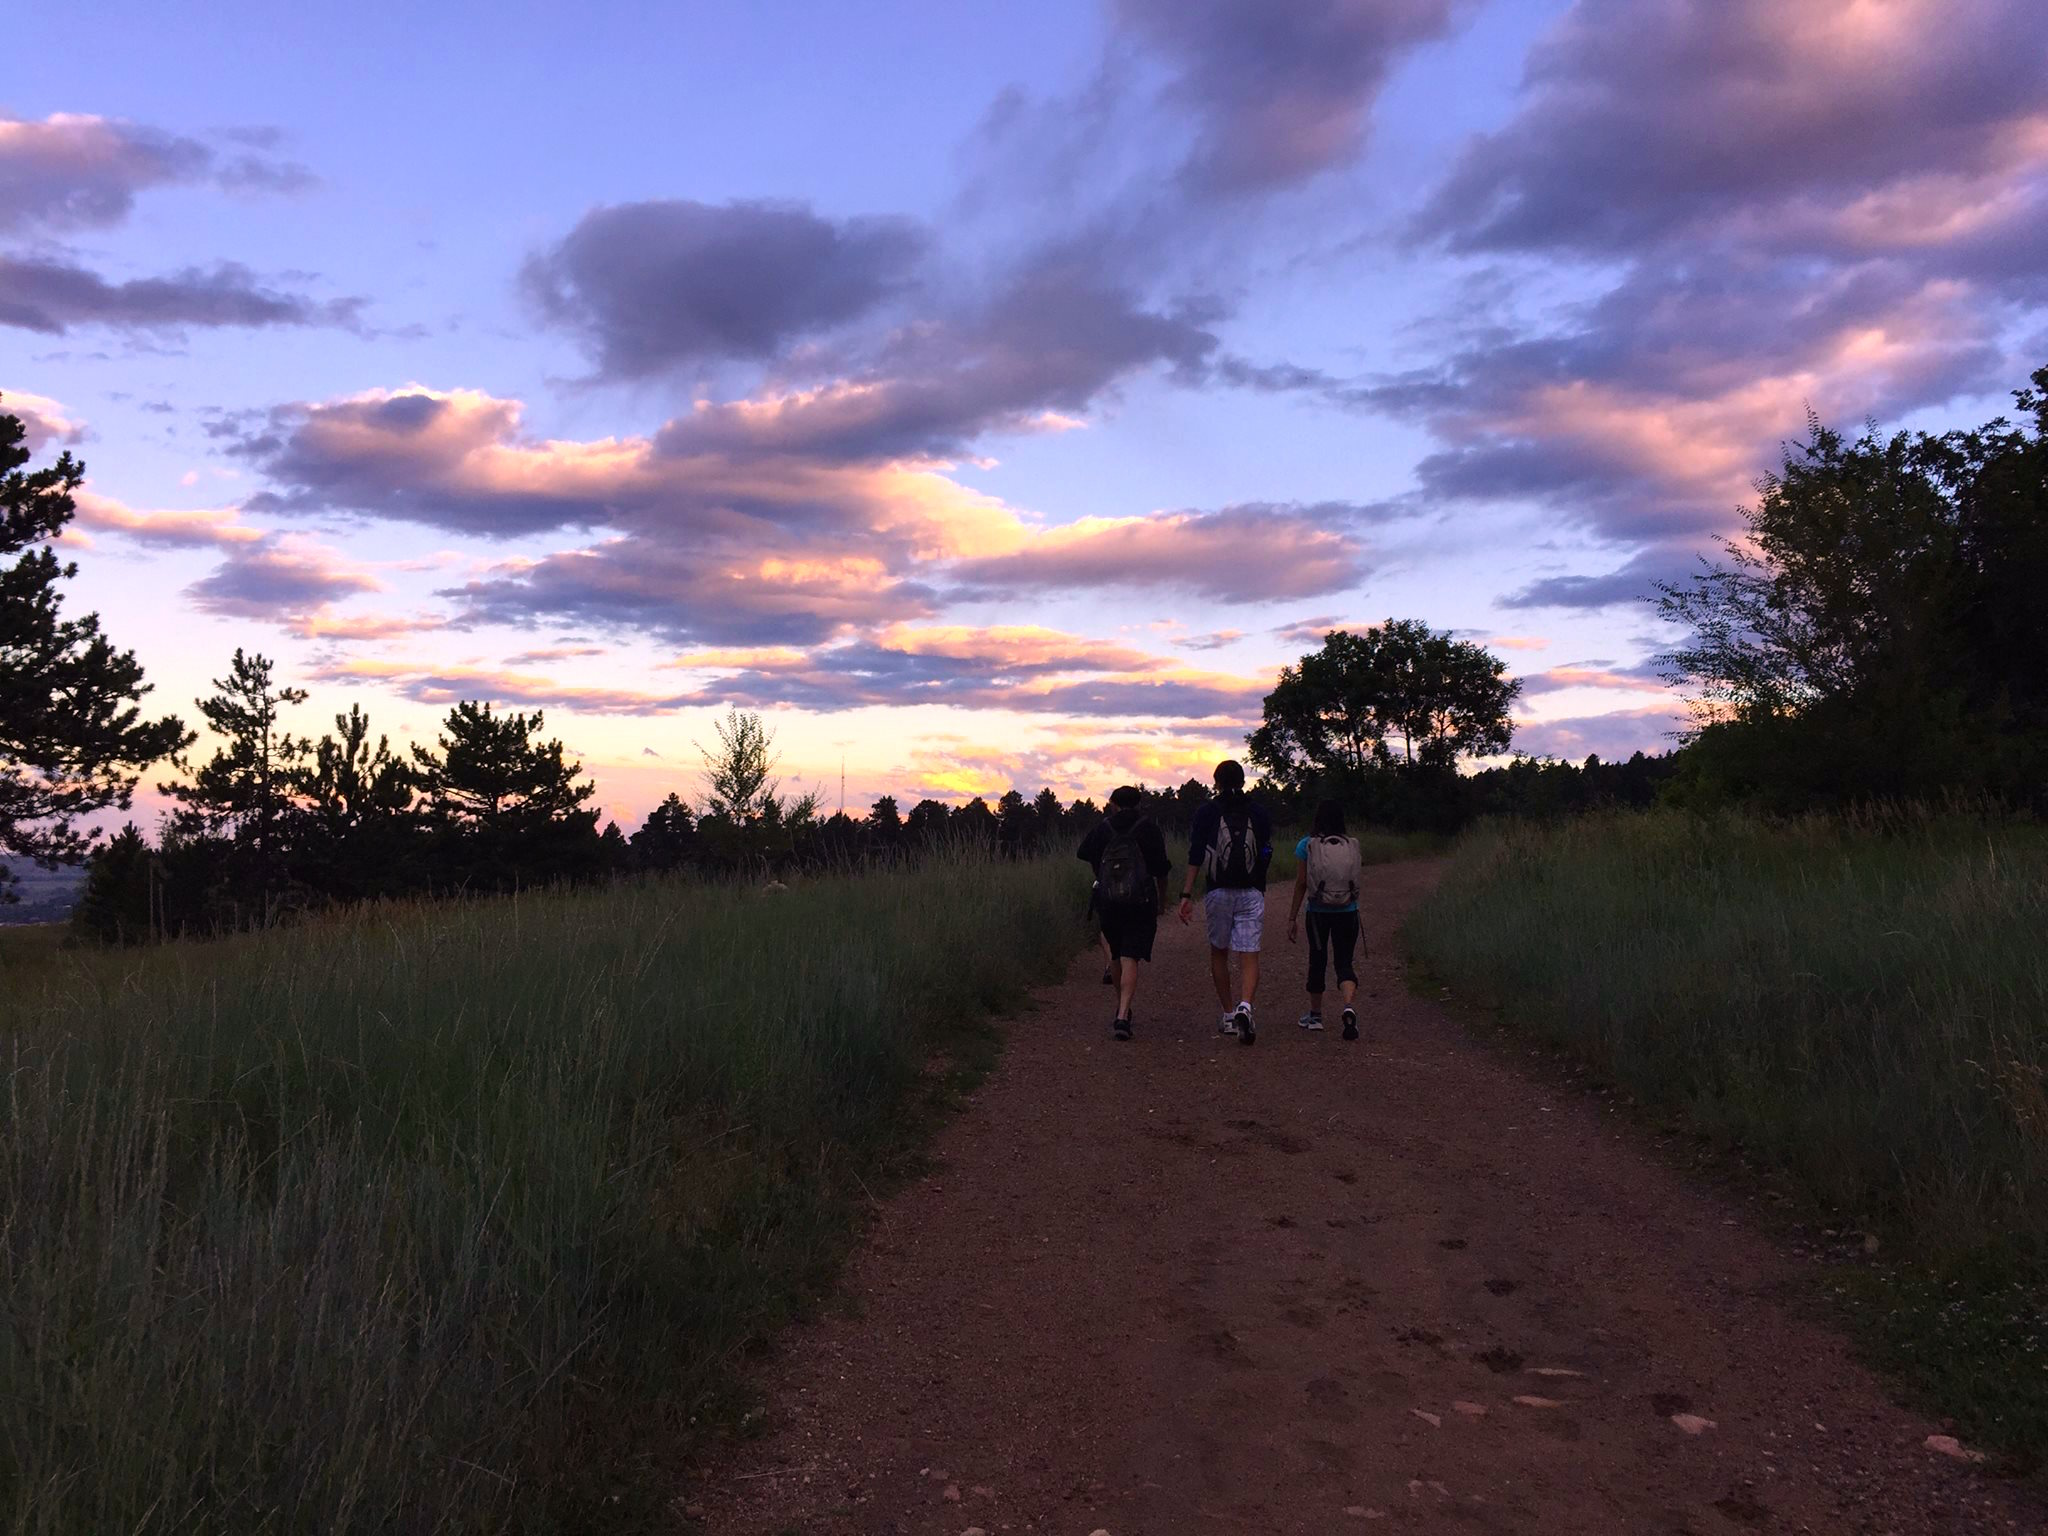 A hike in Boulder (27 Jul)